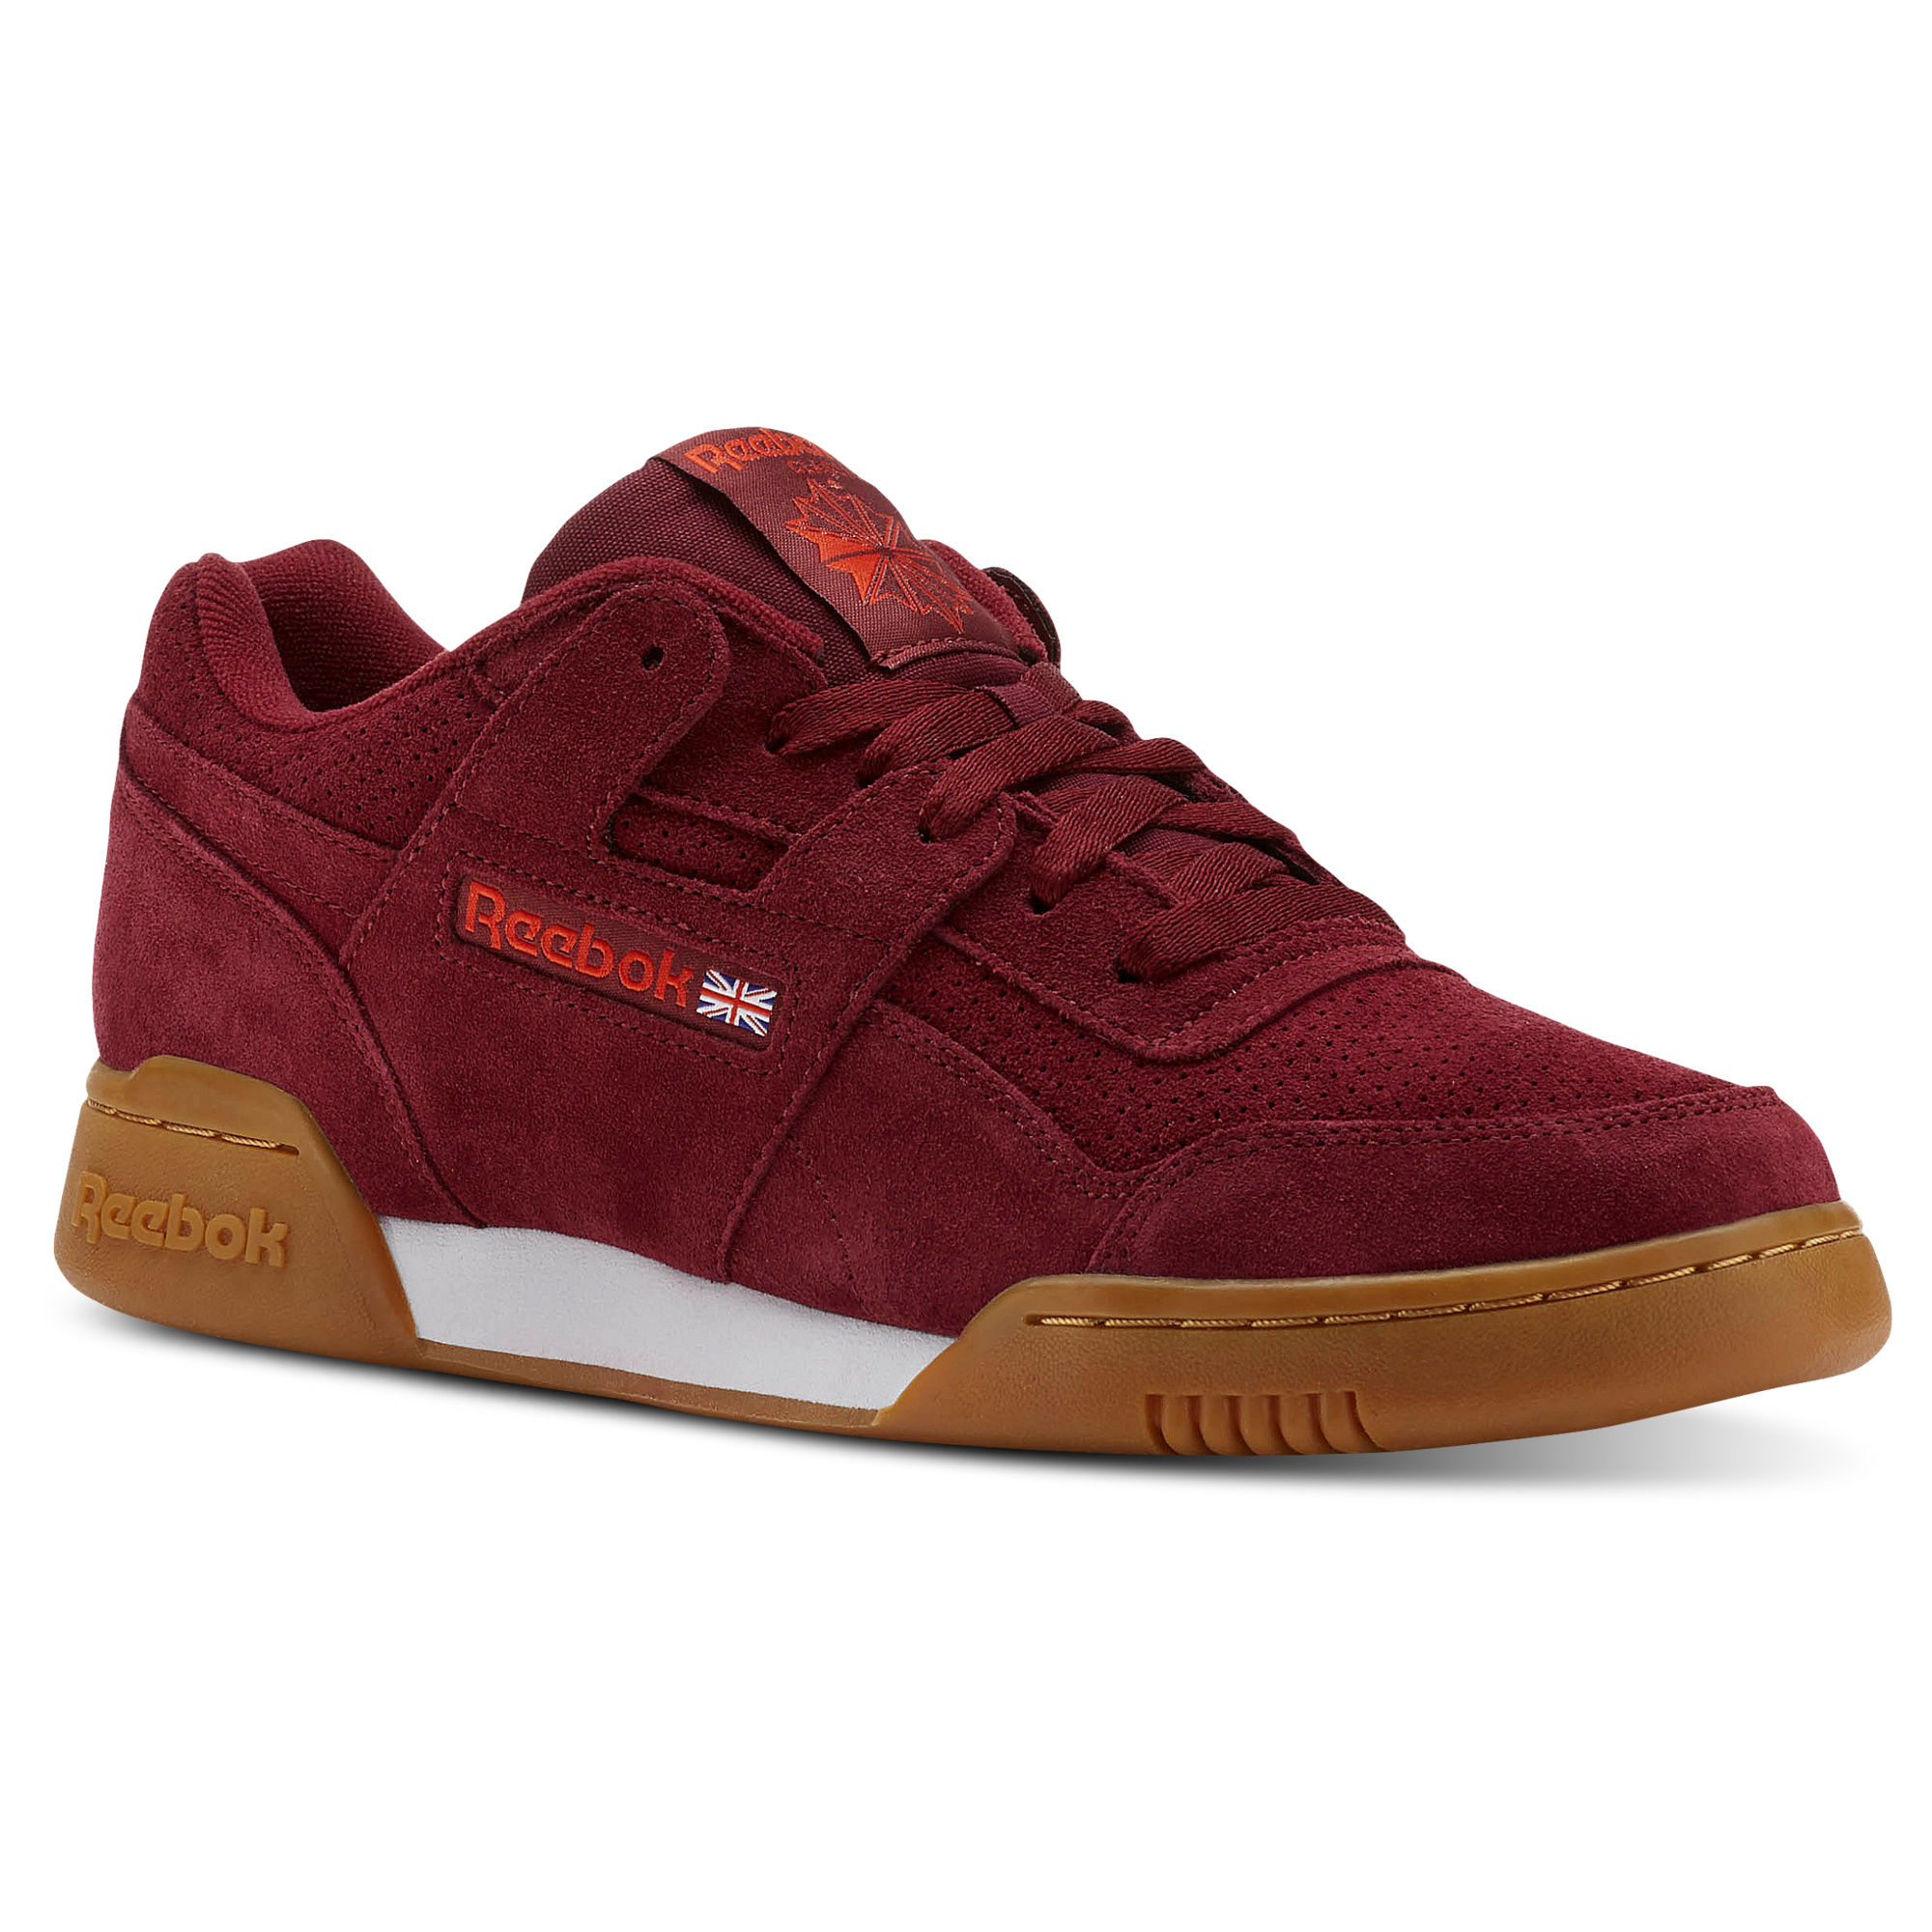 Reebok WORKOUT PLUS MU Womens Burgundy/White Sneakers (272EQBYK)